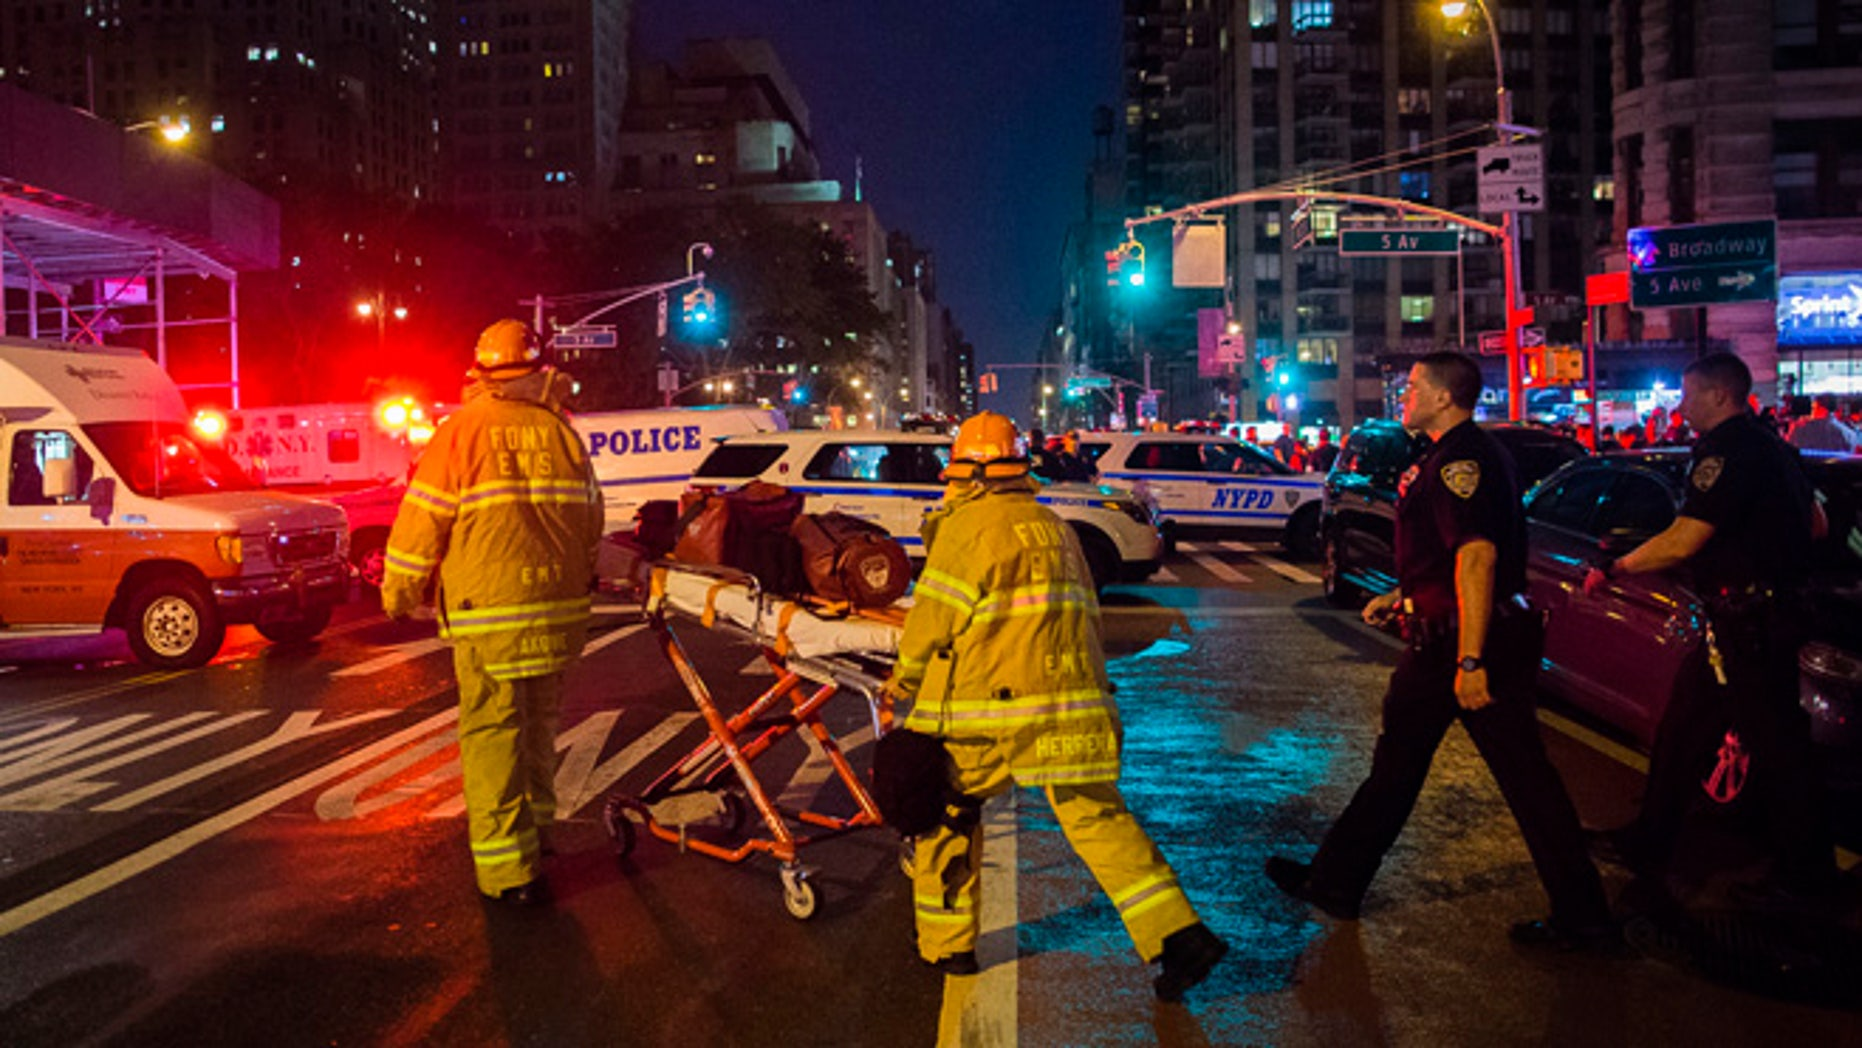 Police and firefighters work near the scene of an apparent explosion in Manhattan's Chelsea neighborhood, in New York, Saturday, Sept. 17, 2016. A law enforcement official tells The Associated Press that an explosion in the Chelsea neighborhood appears to have come from a construction toolbox in front of a building. The official spoke on condition of anonymity because the person wasn't authorized to speak about an ongoing investigation. More than two dozen people have sustained minor injuries in the explosion on West 23rd Street.(AP Photo/Andres Kudacki)